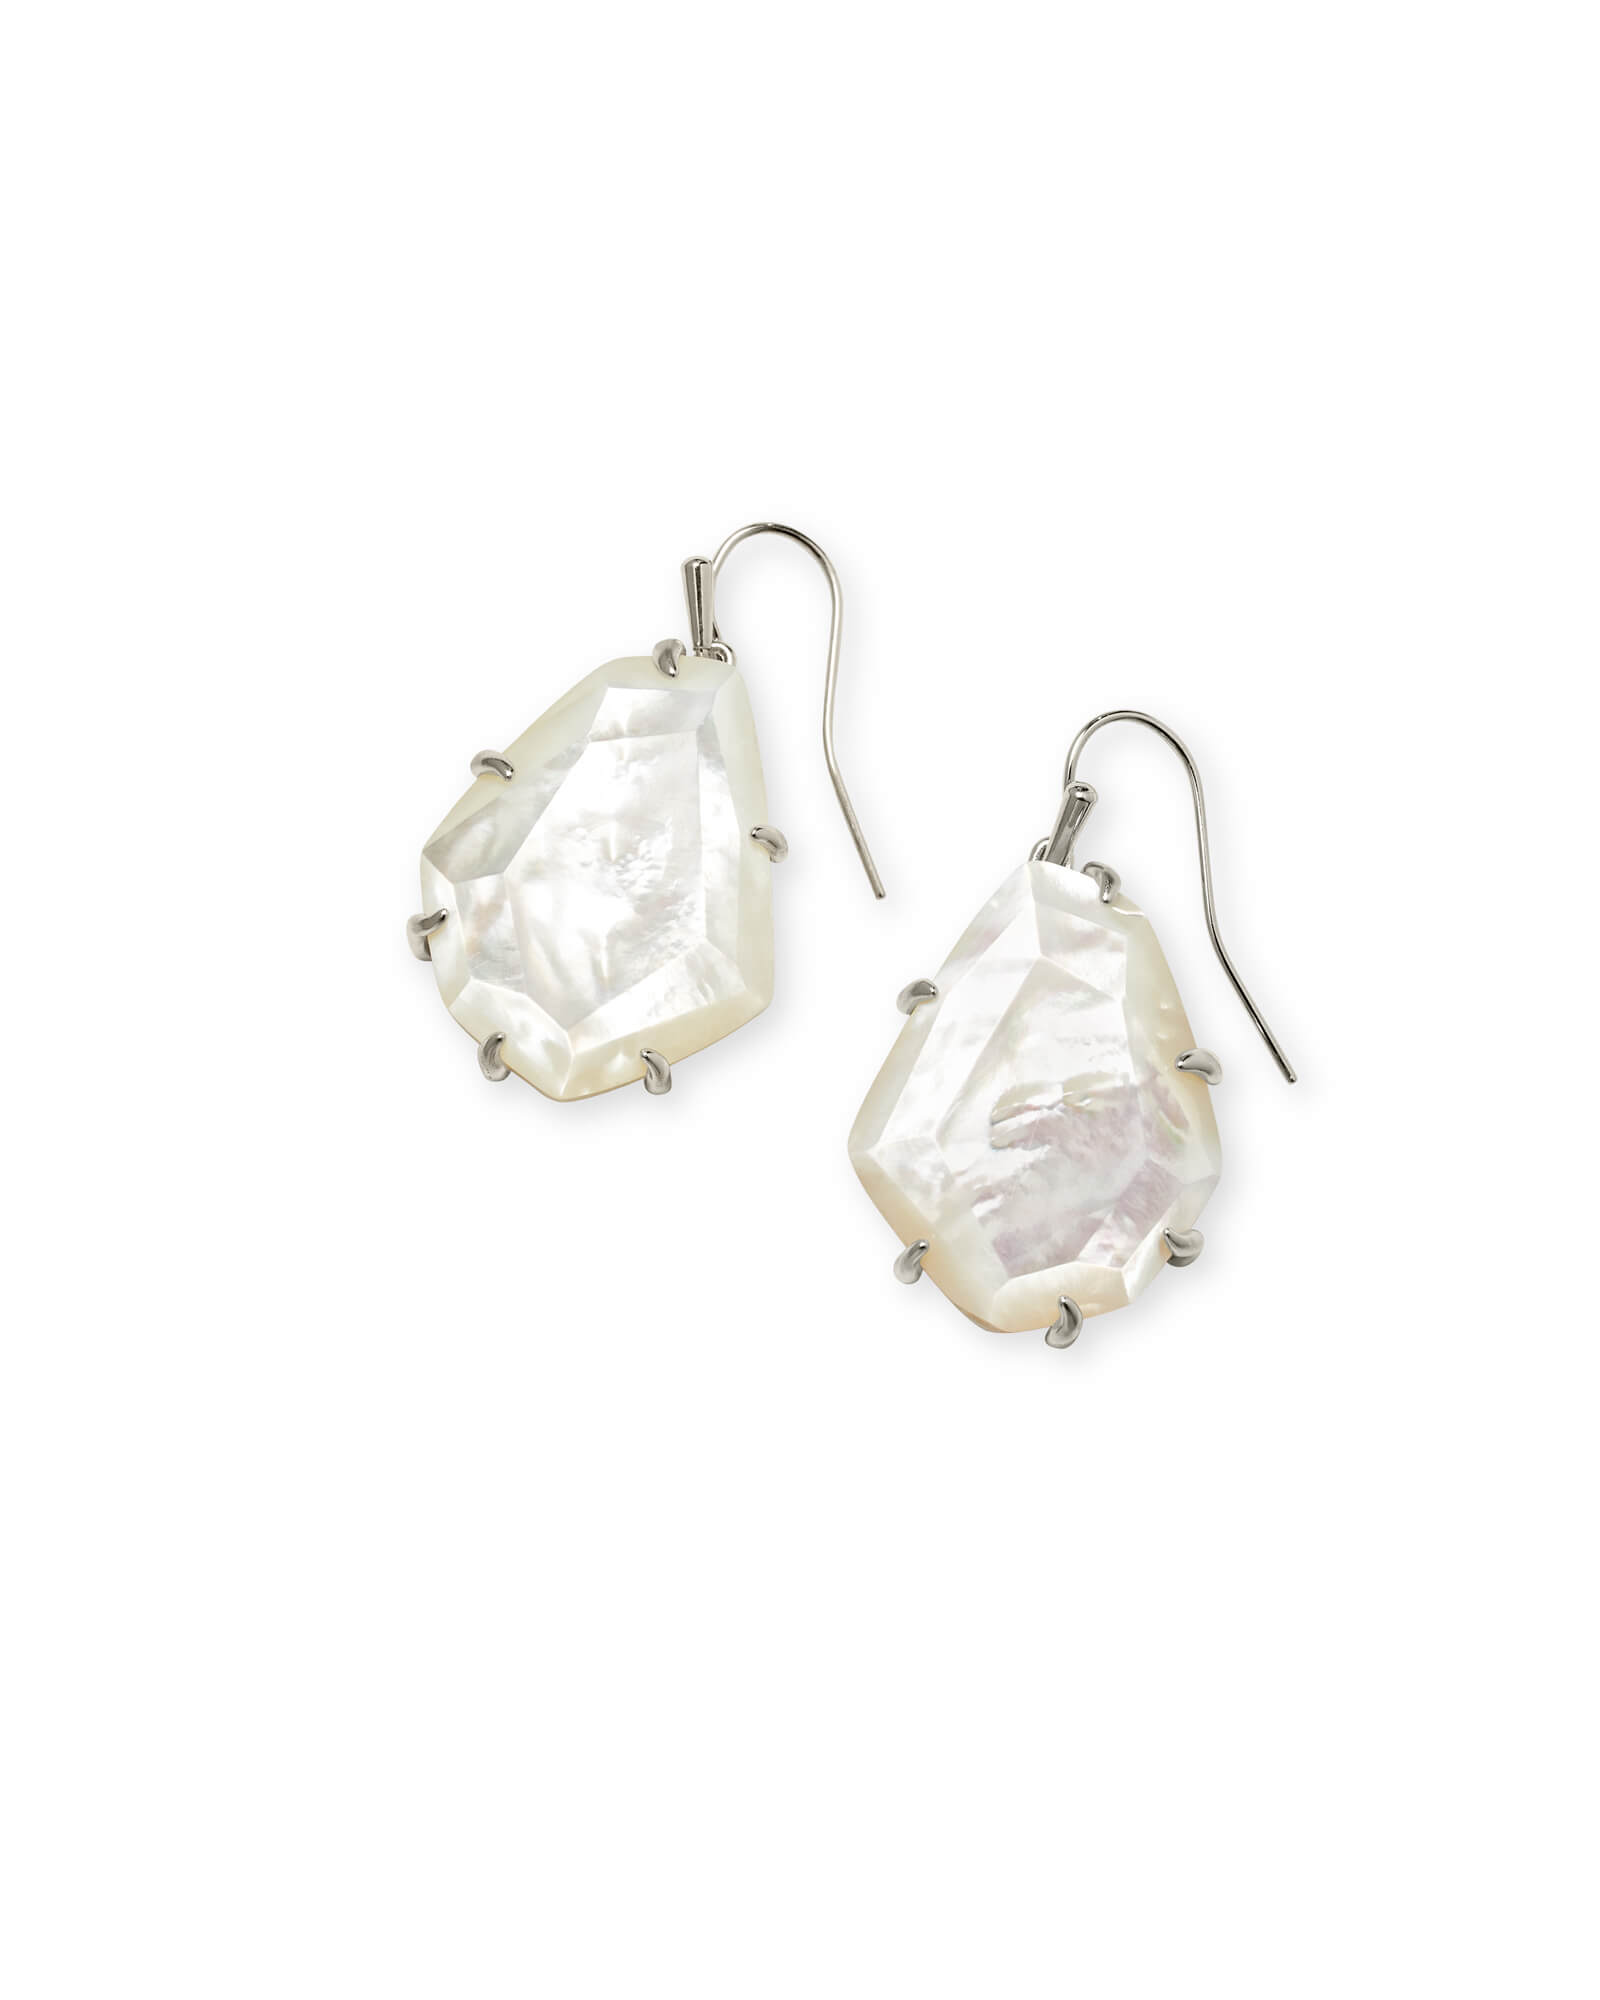 Rosenell Silver Drop Earrings In Ivory Mother of Pearl